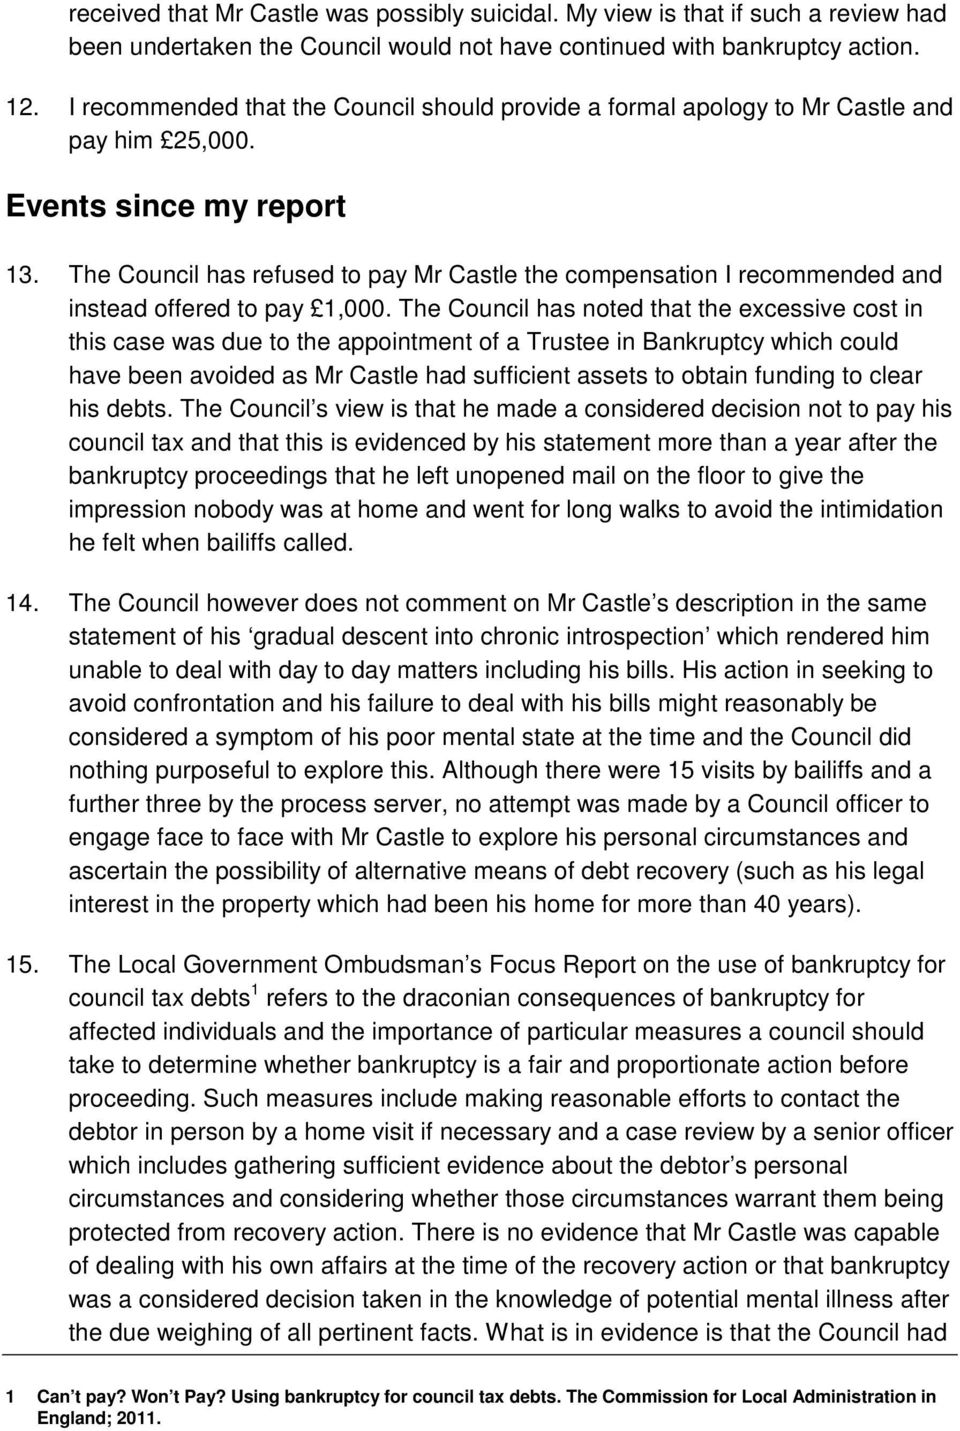 The Council has refused to pay Mr Castle the compensation I recommended and instead offered to pay 1,000.